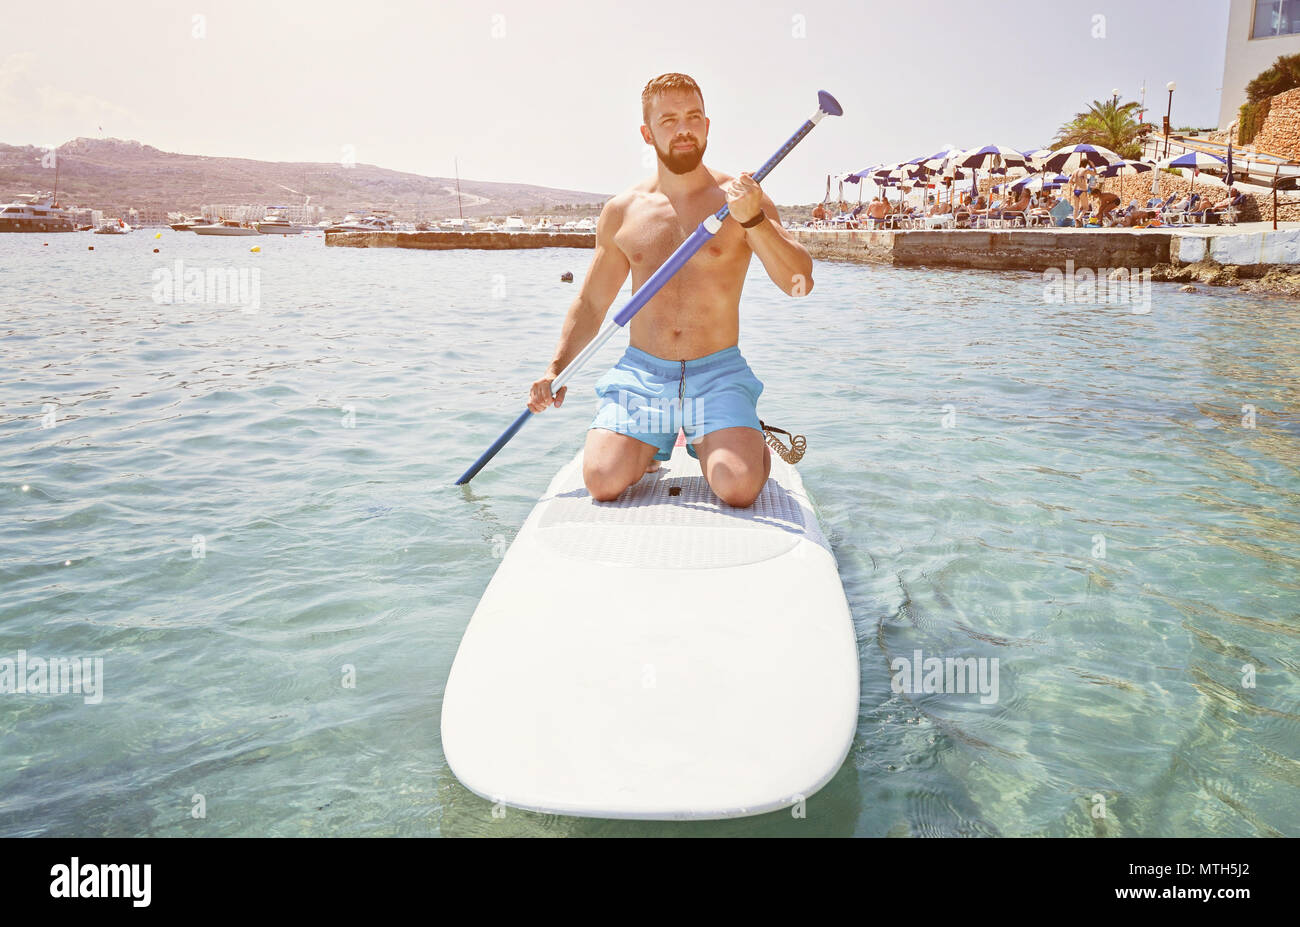 Adult bearded man beginner surfer kneel on paddle board on sea. Summer active vacation and water sport concept - Stock Image